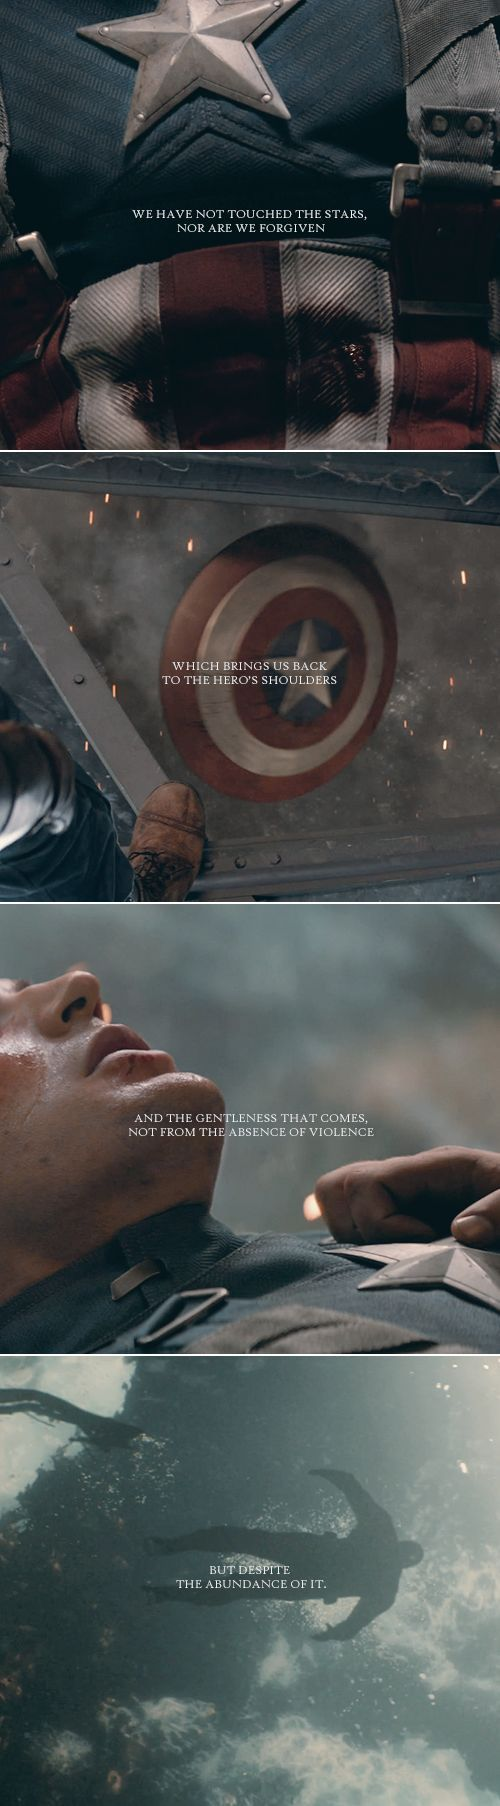 Captain America: We have not touched the stars nor are we forgiven which brings us back to the hero's shoulders and the gentleness that comes not from the absence of violence but despite the abundance of it. #marvel